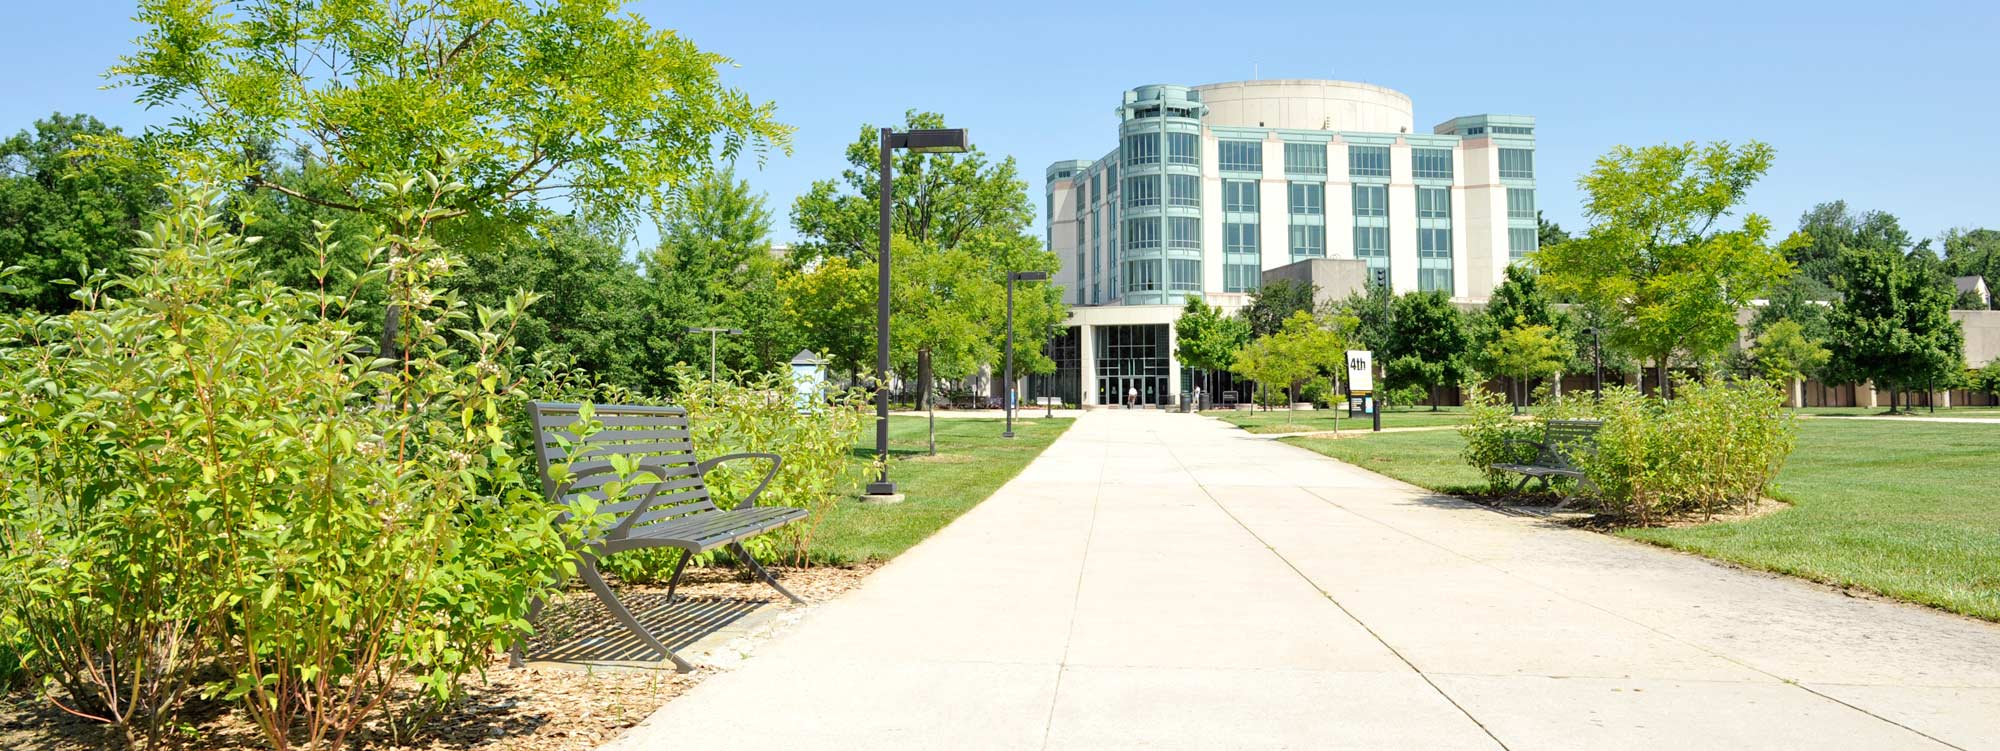 Image of University of Maryland Baltimore County campus.